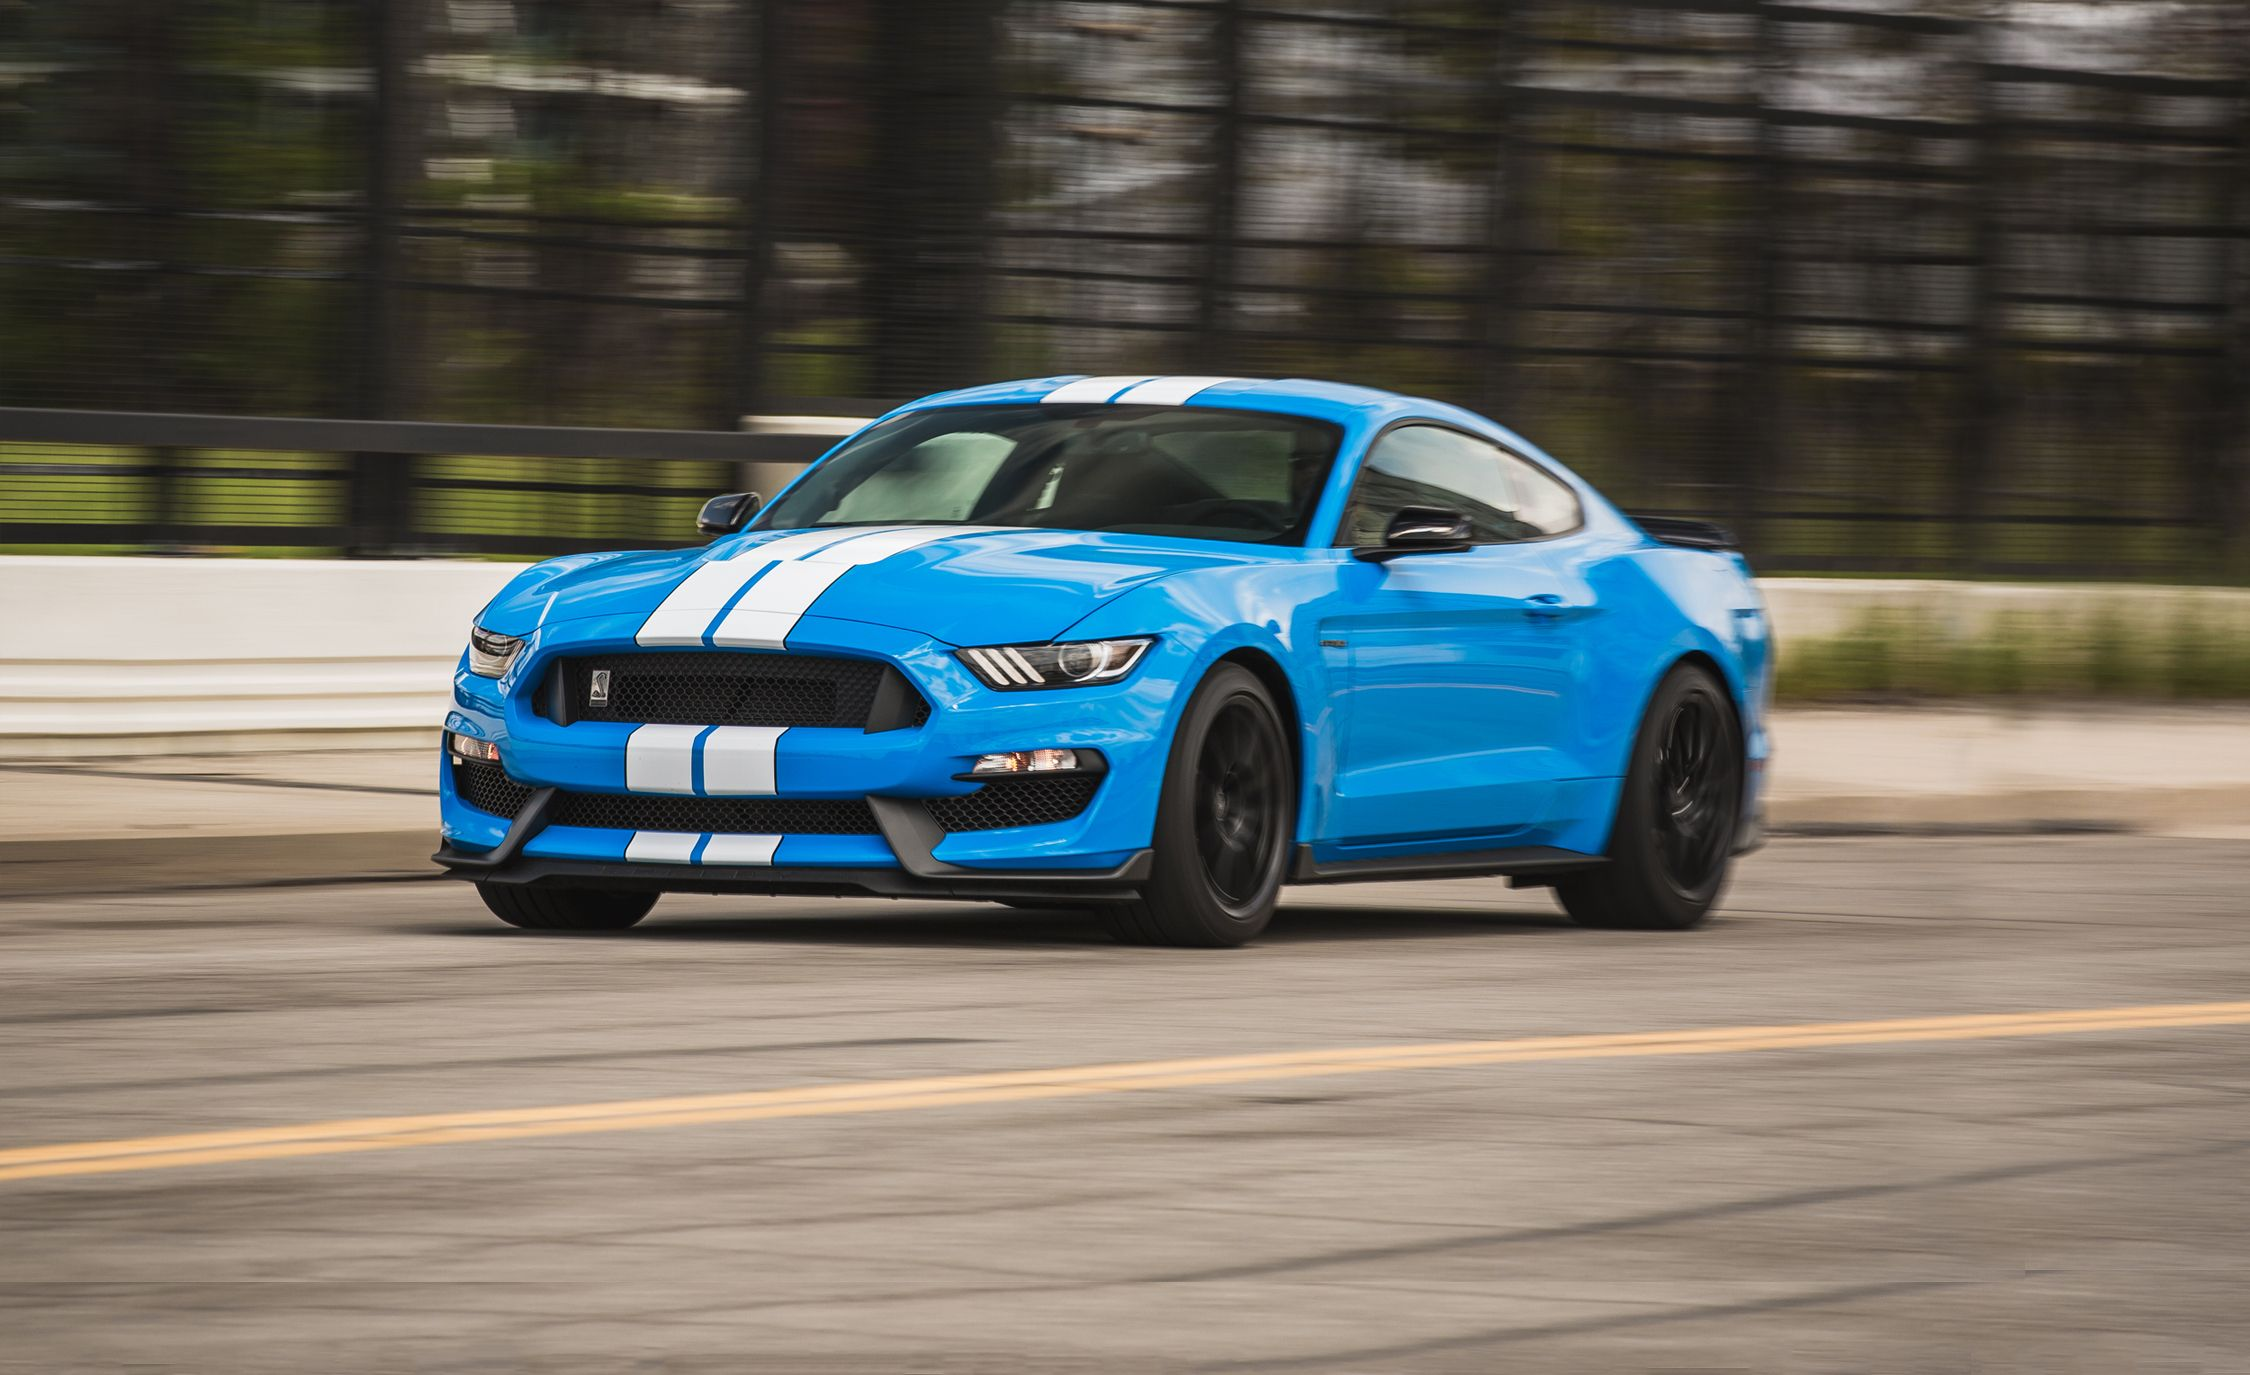 Mustang Gt350R For Sale >> 2017 Ford Mustang Shelby GT350